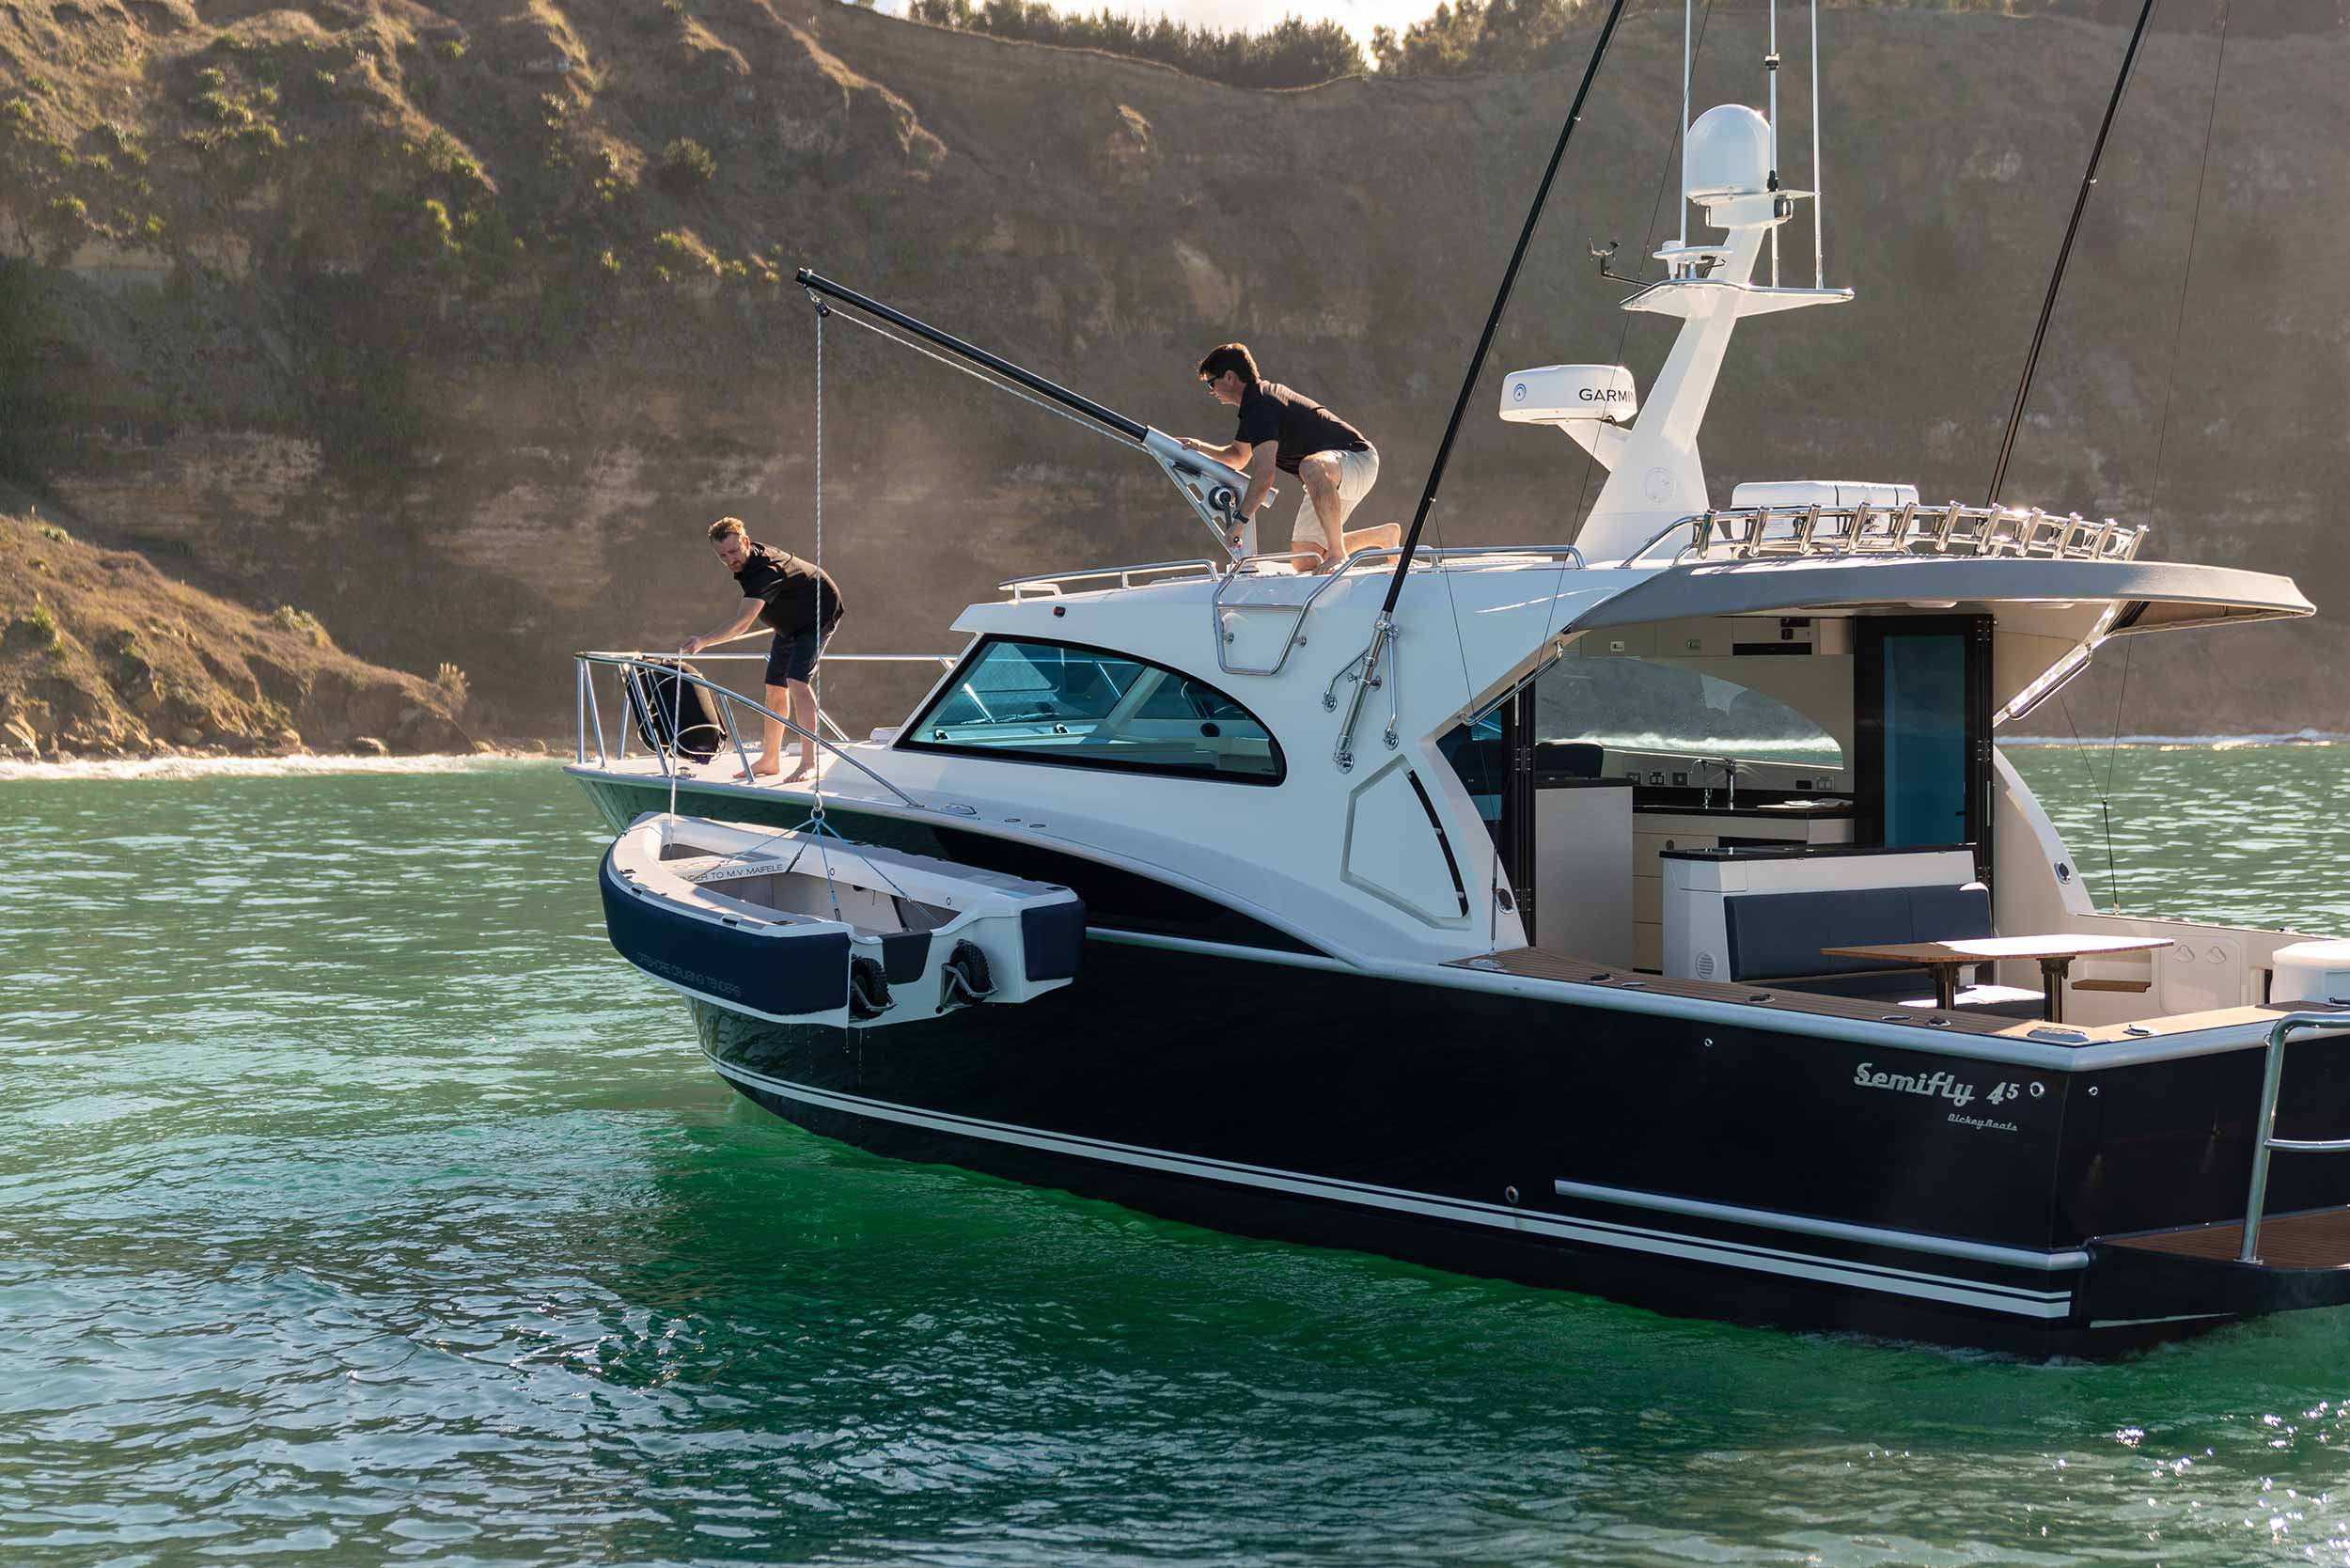 Dickey Semifly 45 review excerpts - Boating NZ Jan 2021